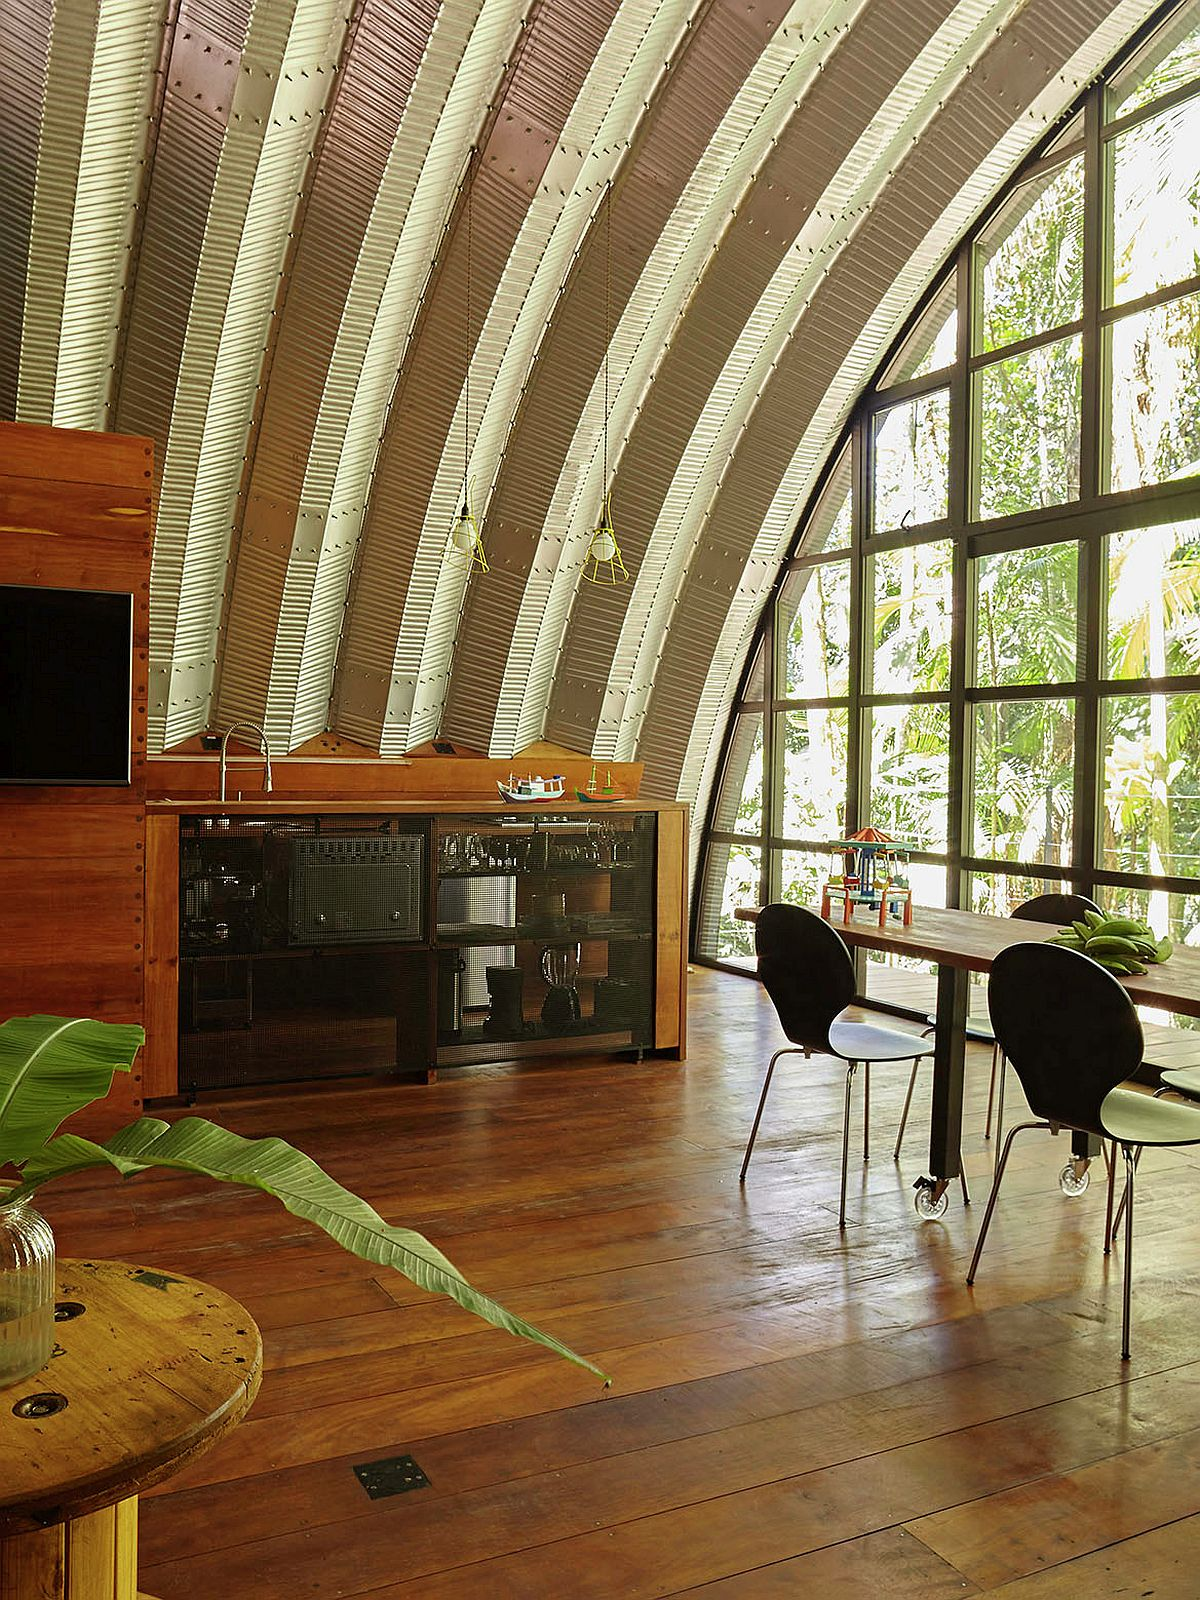 Dome like design of the house gives the interior a unique appeal